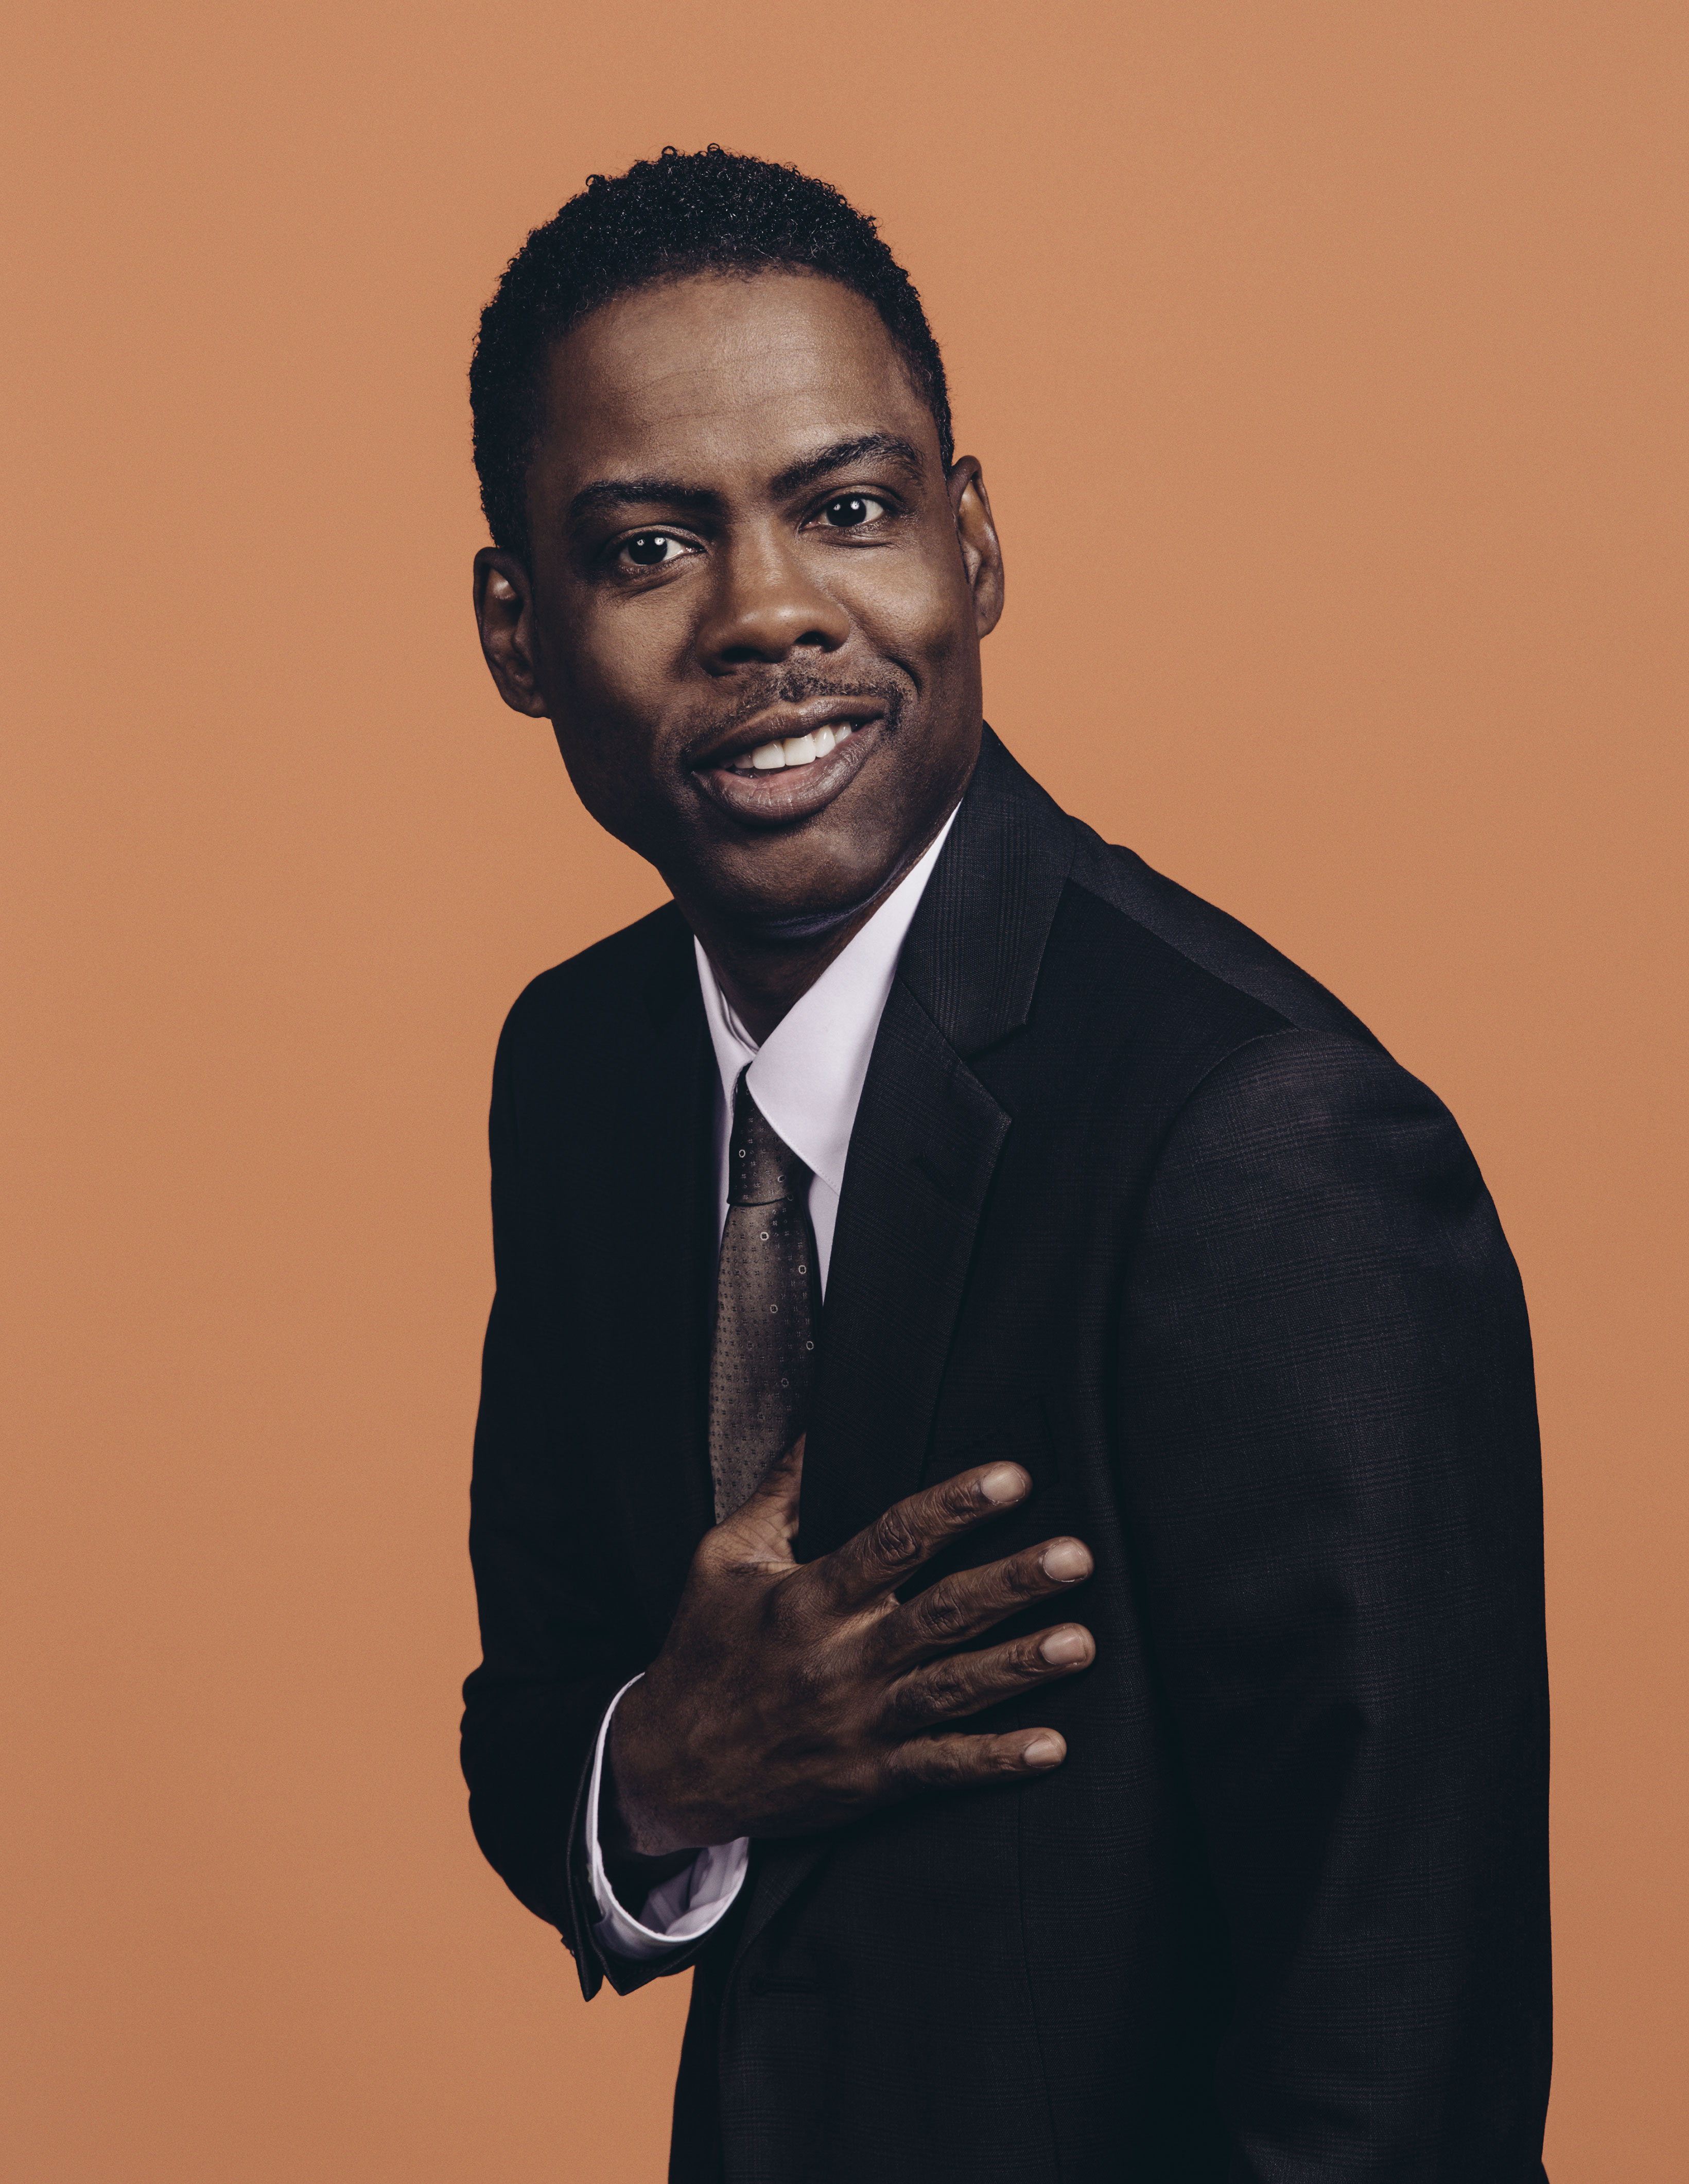 Chris Rock. From  Will The Real Chris Rock Please Stand Up?  Dec. 1 / Dec. 8, 2014 issue.